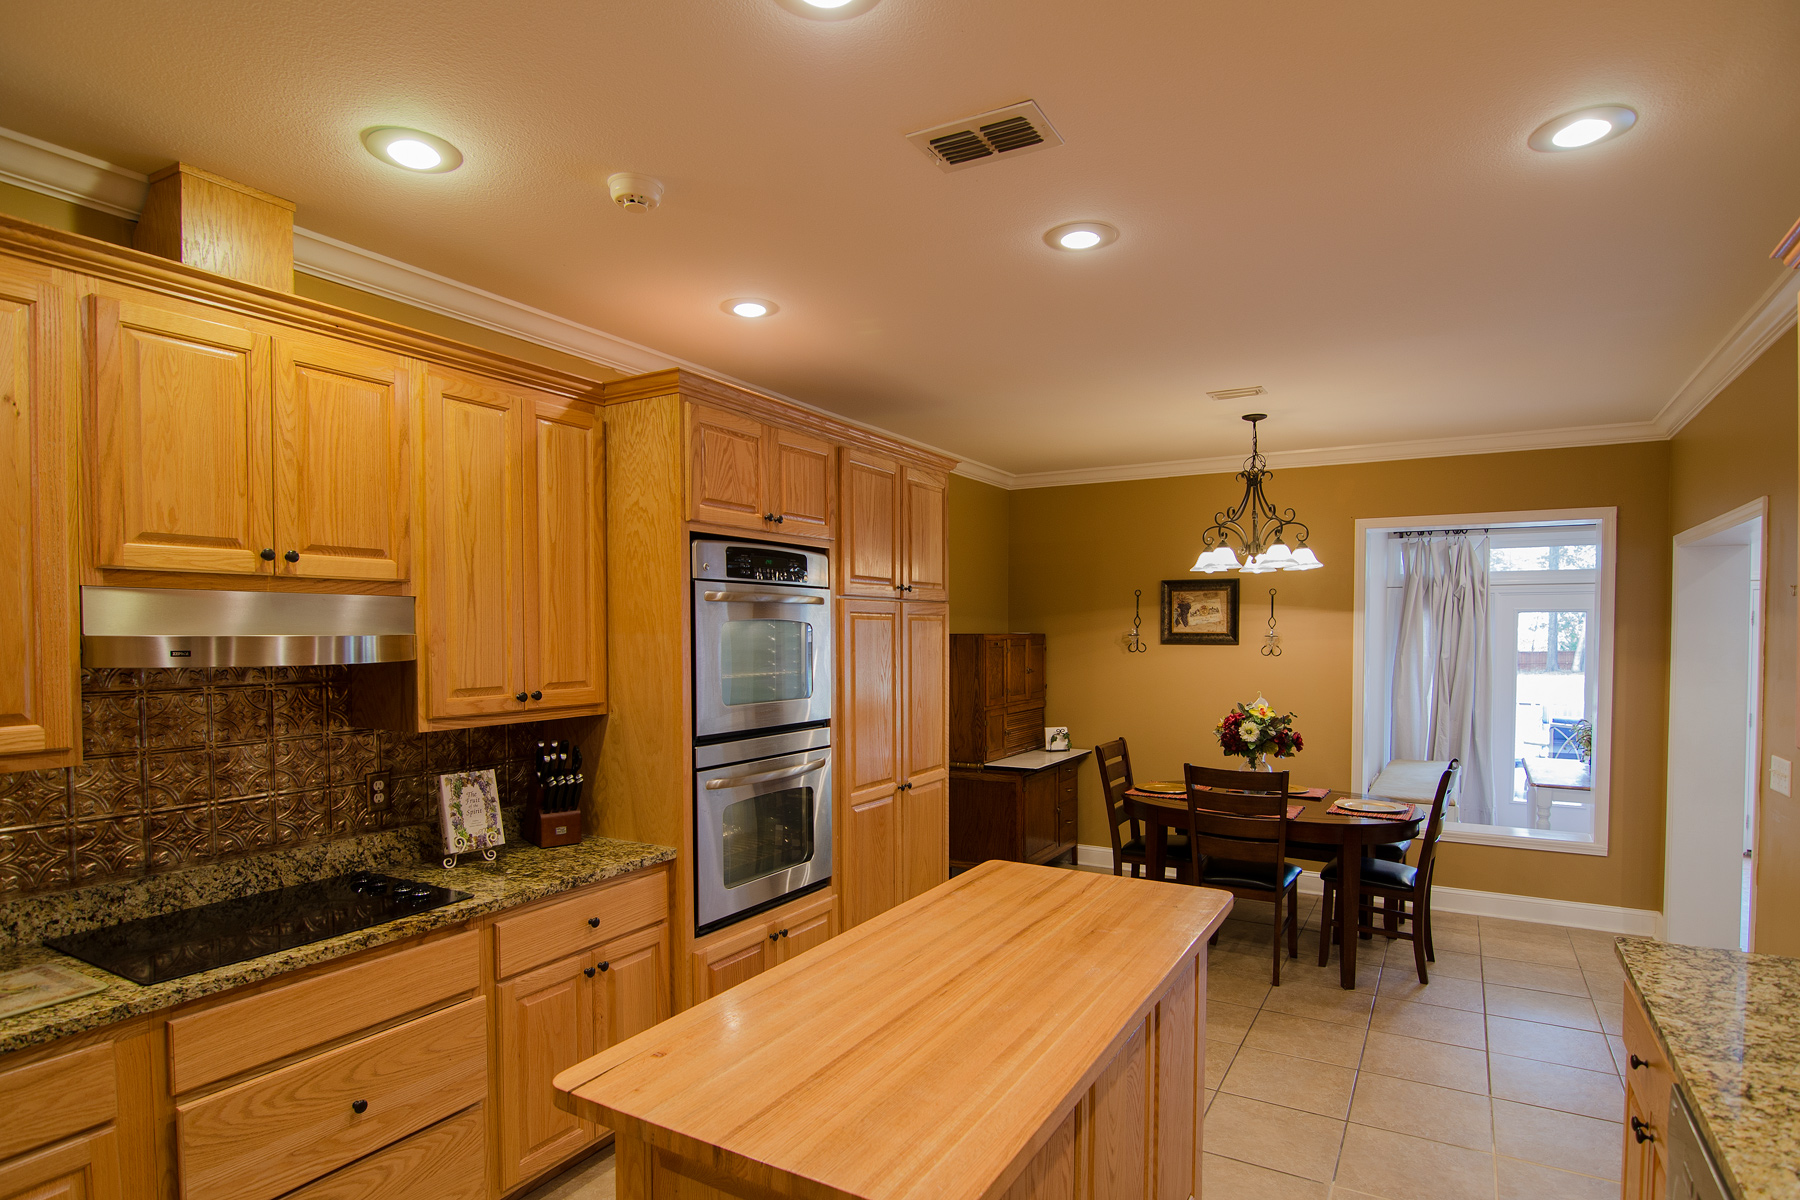 3riversrealty-kitchen3.jpg